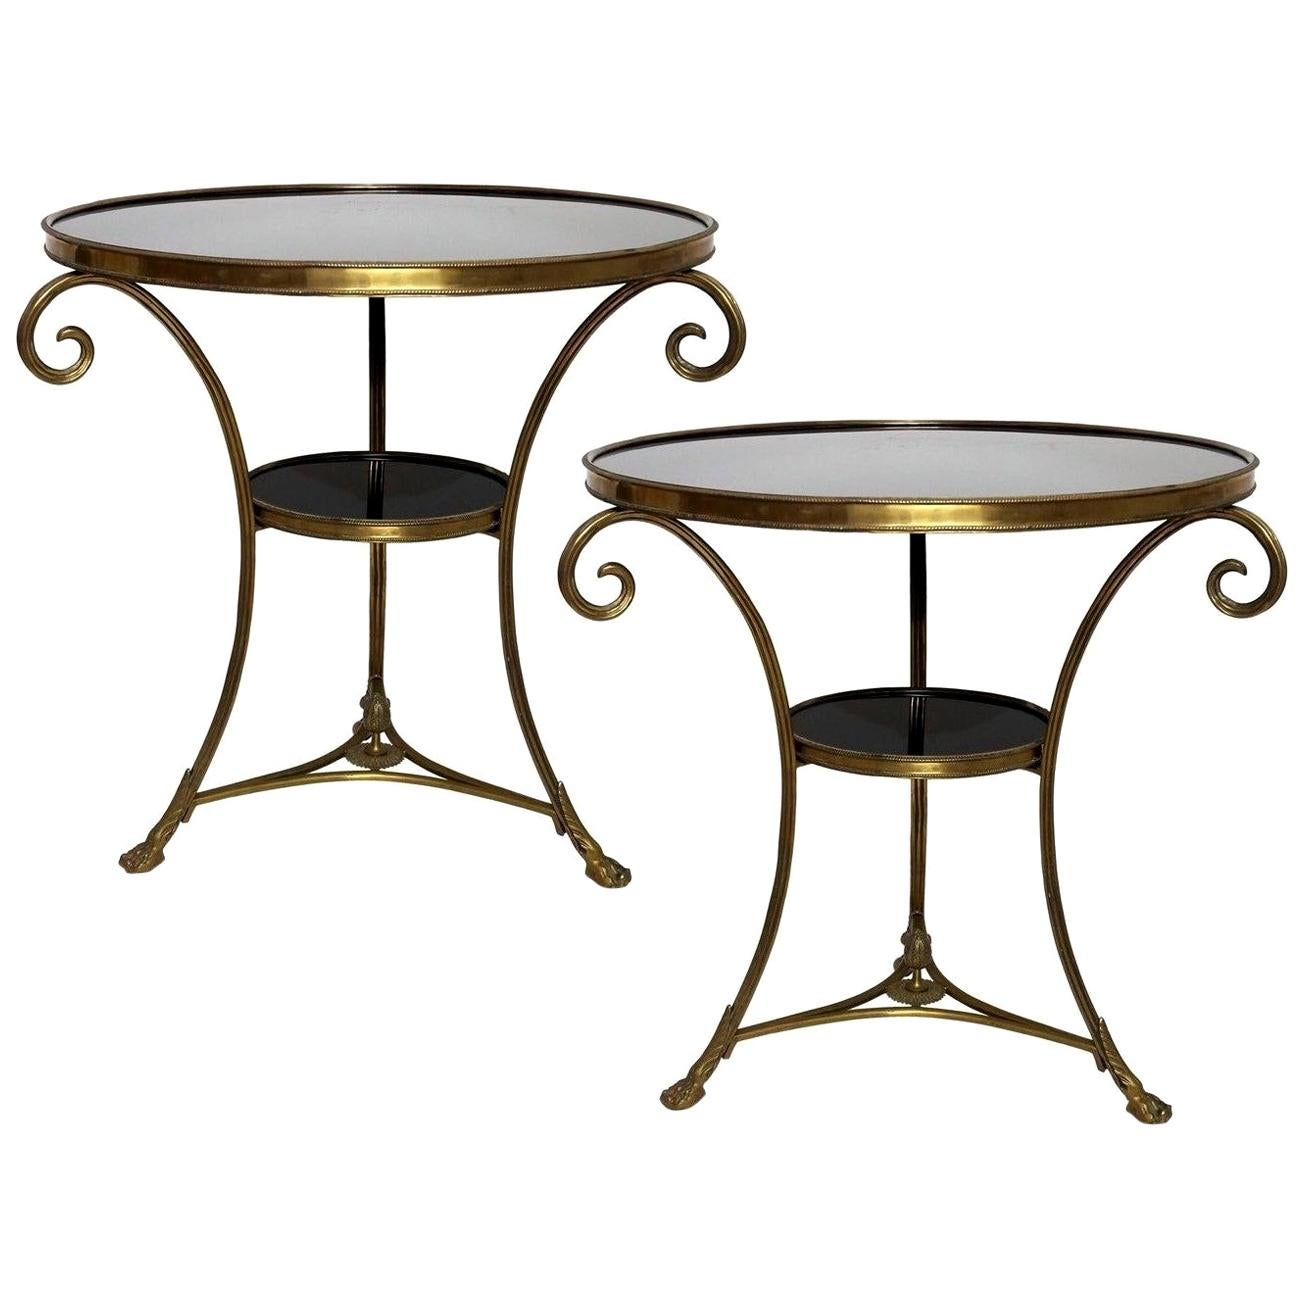 Pair of Louis XVI Style Two-Tier Bronze Dore' and Marble Guéridons